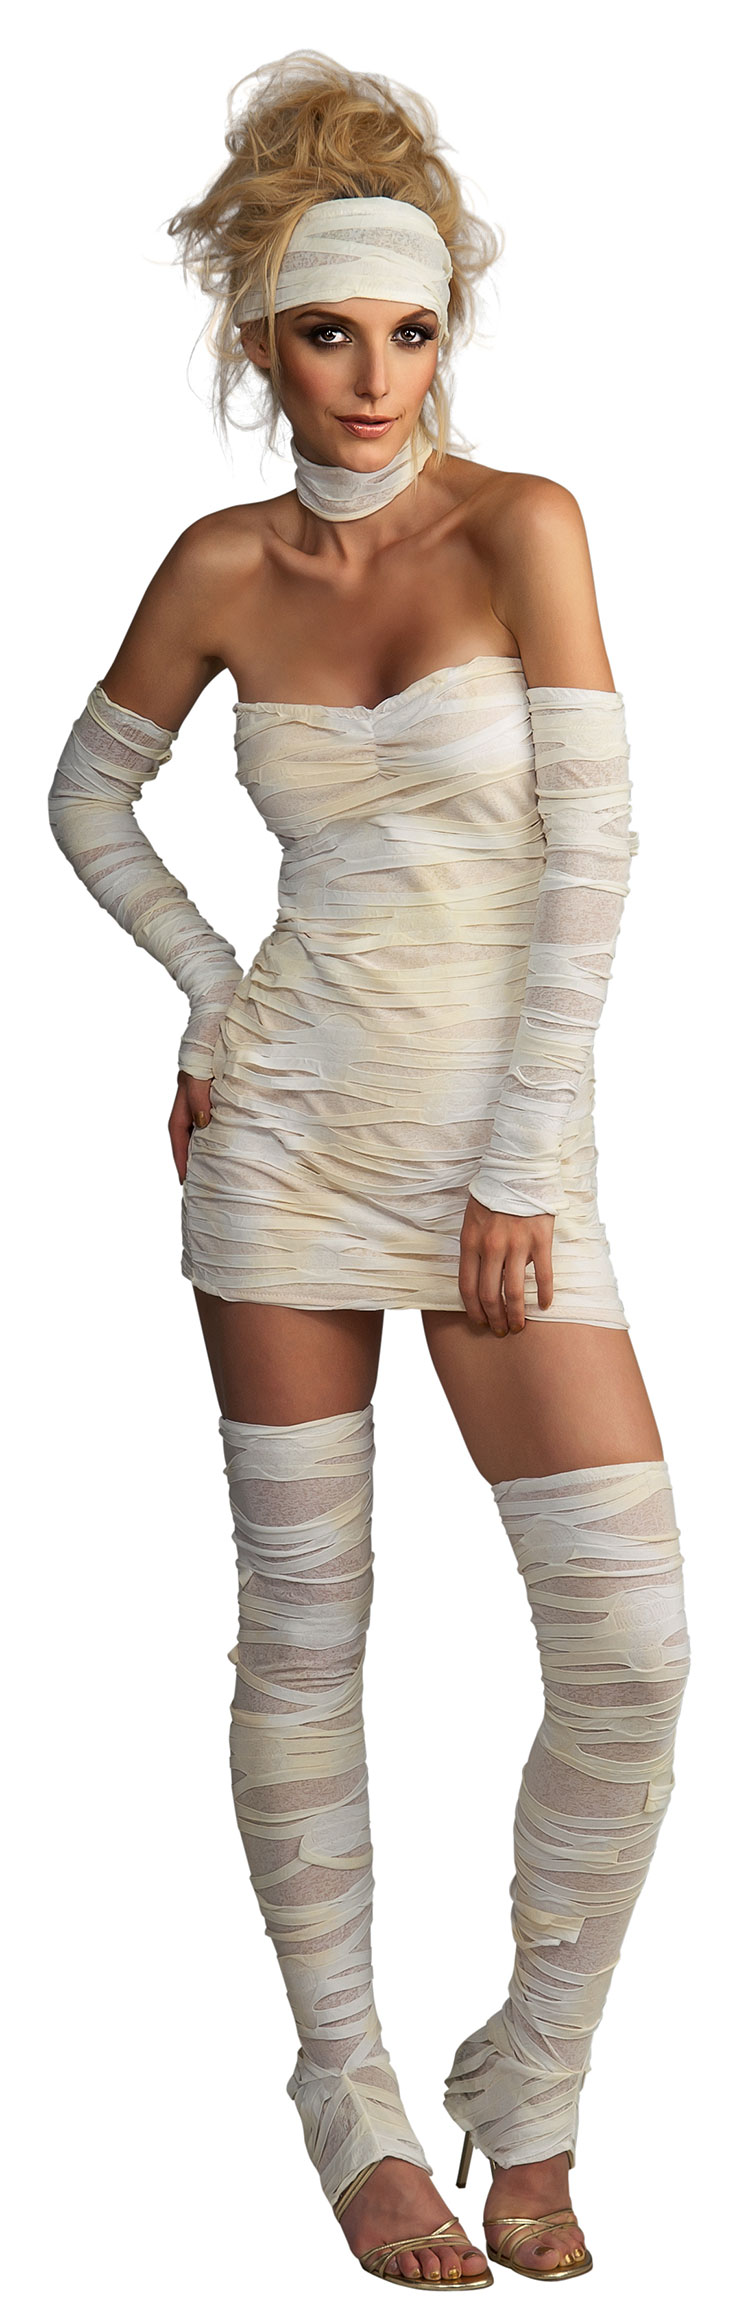 880250-Sexy-Mummy-Costume-large.jpg